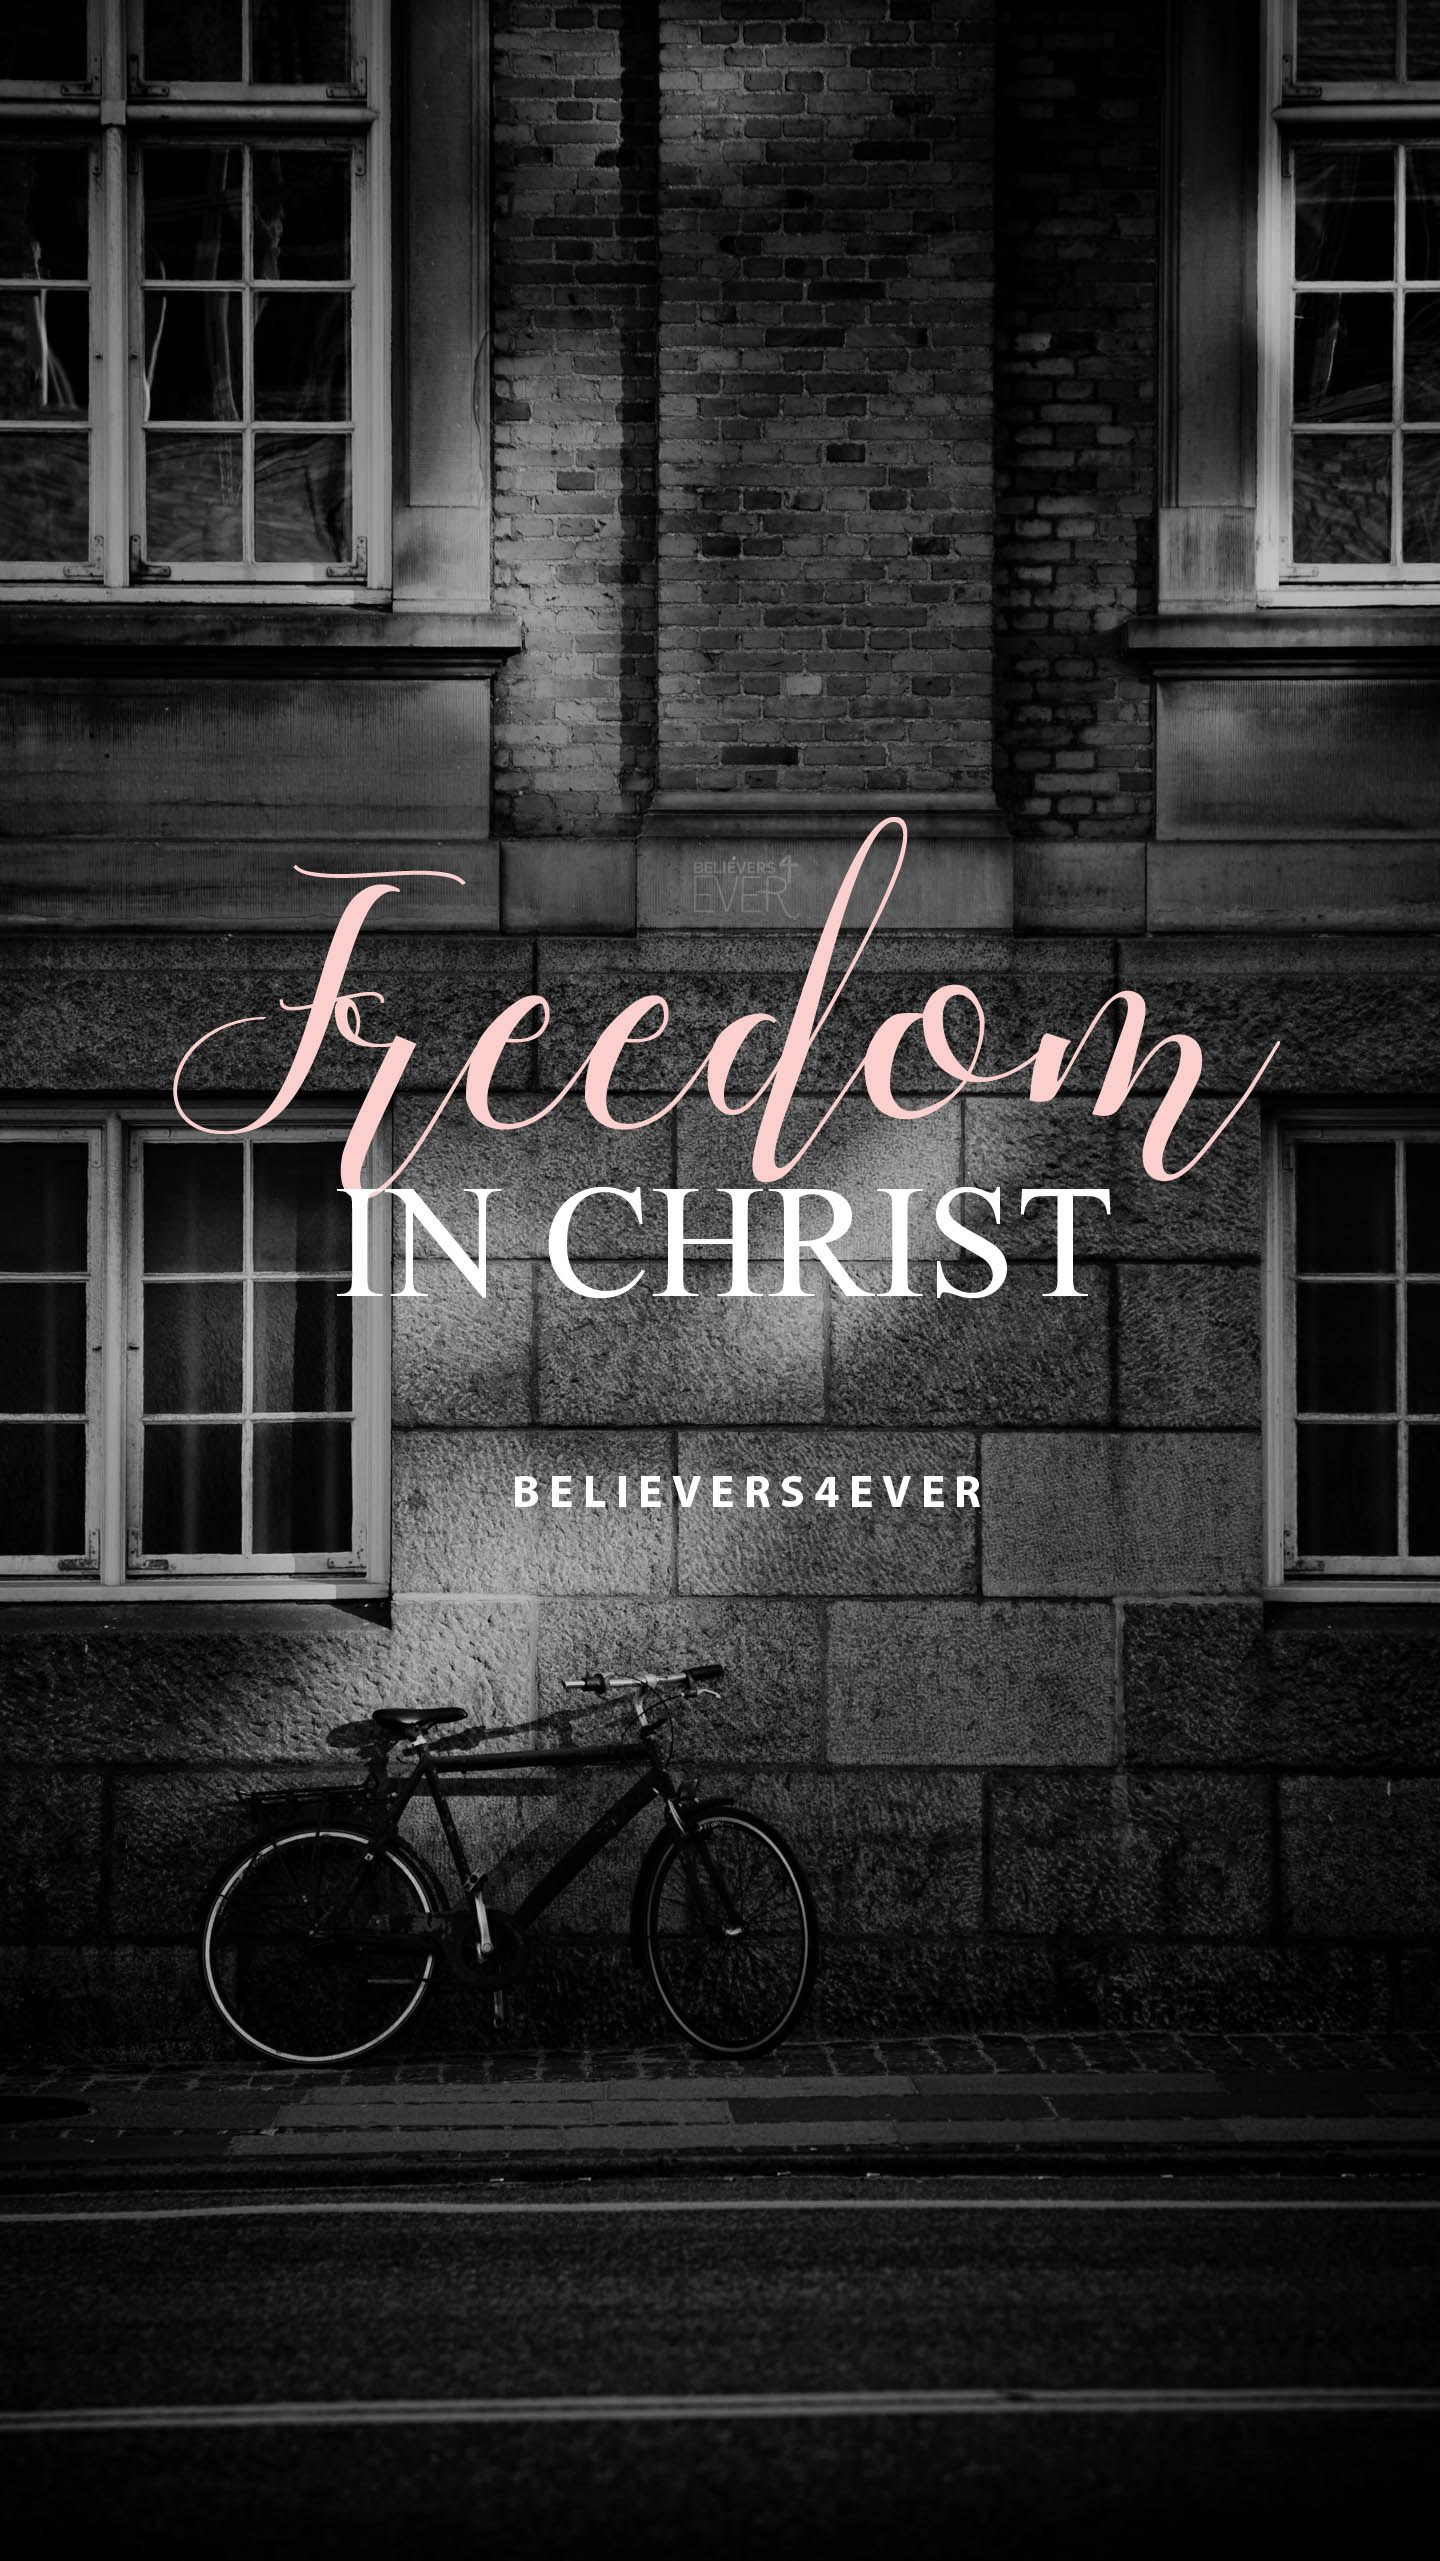 #Freedom in Christ Free Mobile phone wallpaper for Android and iPhones with bible verse and #Christian quotes. #Religious wallpapers.